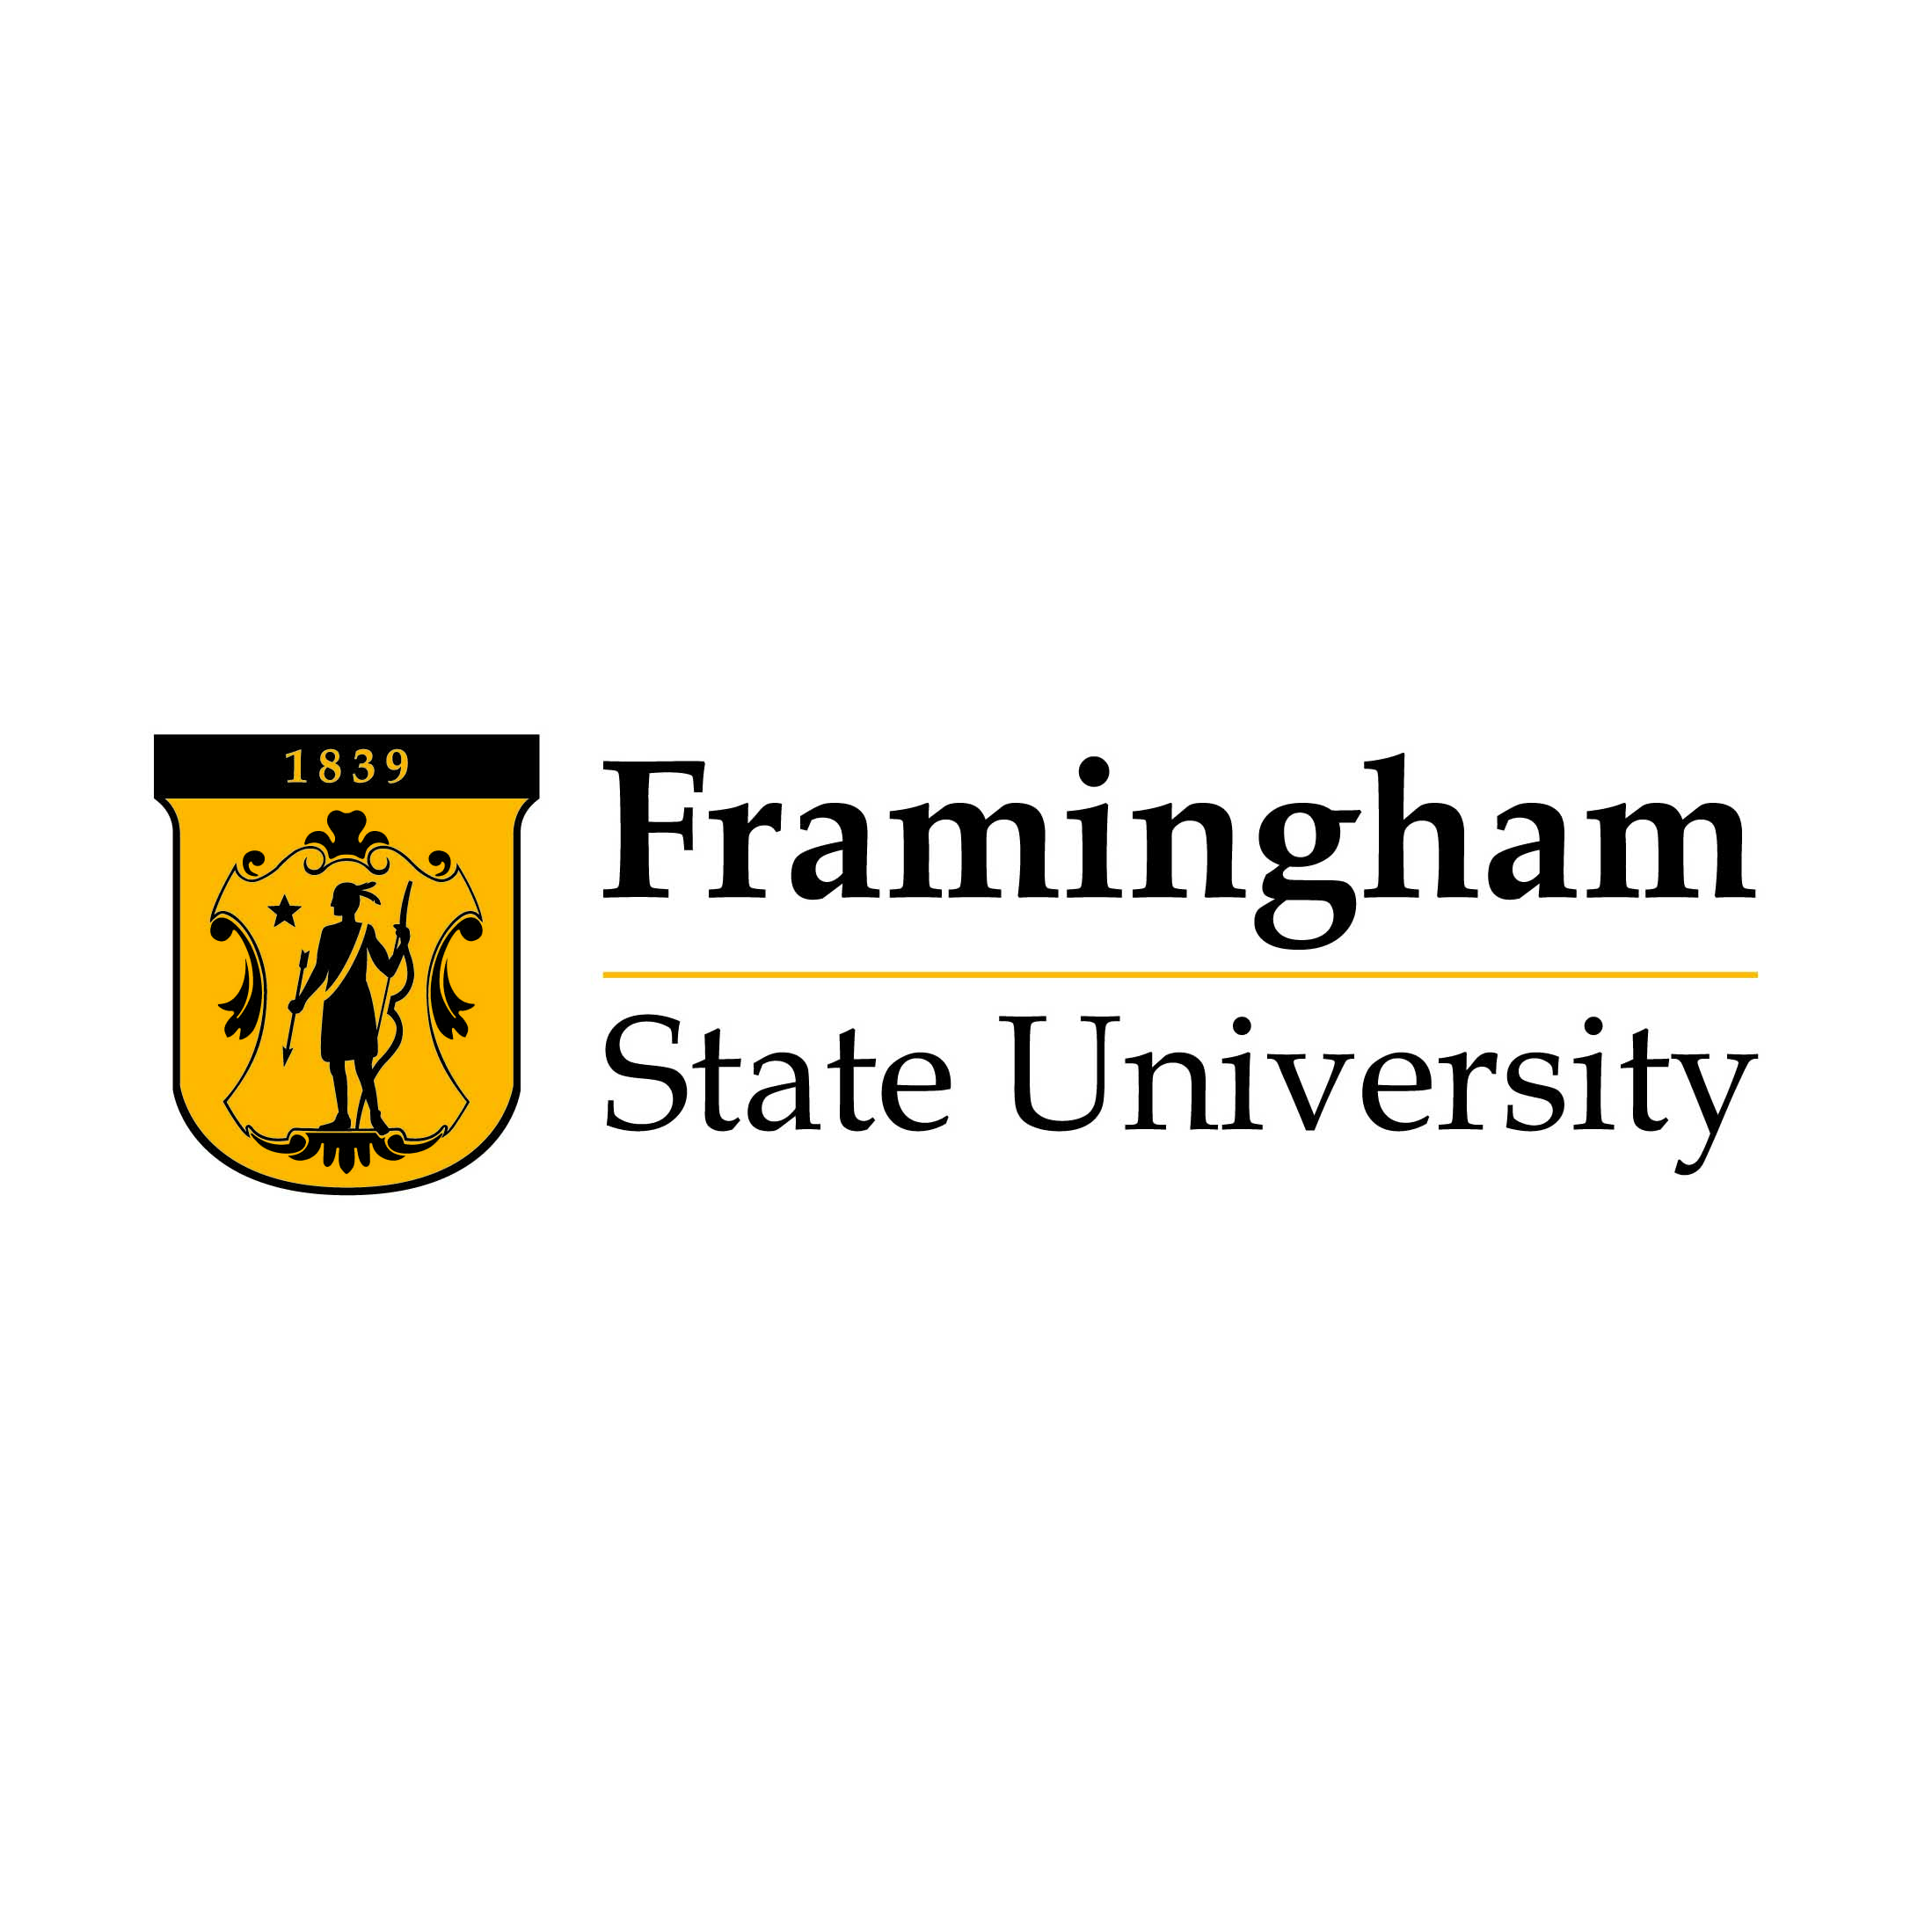 College Credits - Students enrolled in the fall and spring semesters may co-register for our Founder, Dr. Ilan Goldberg's, course (Psych 101: General Psychology) and receive four (4) college credits through Framingham State University for its successful completion.